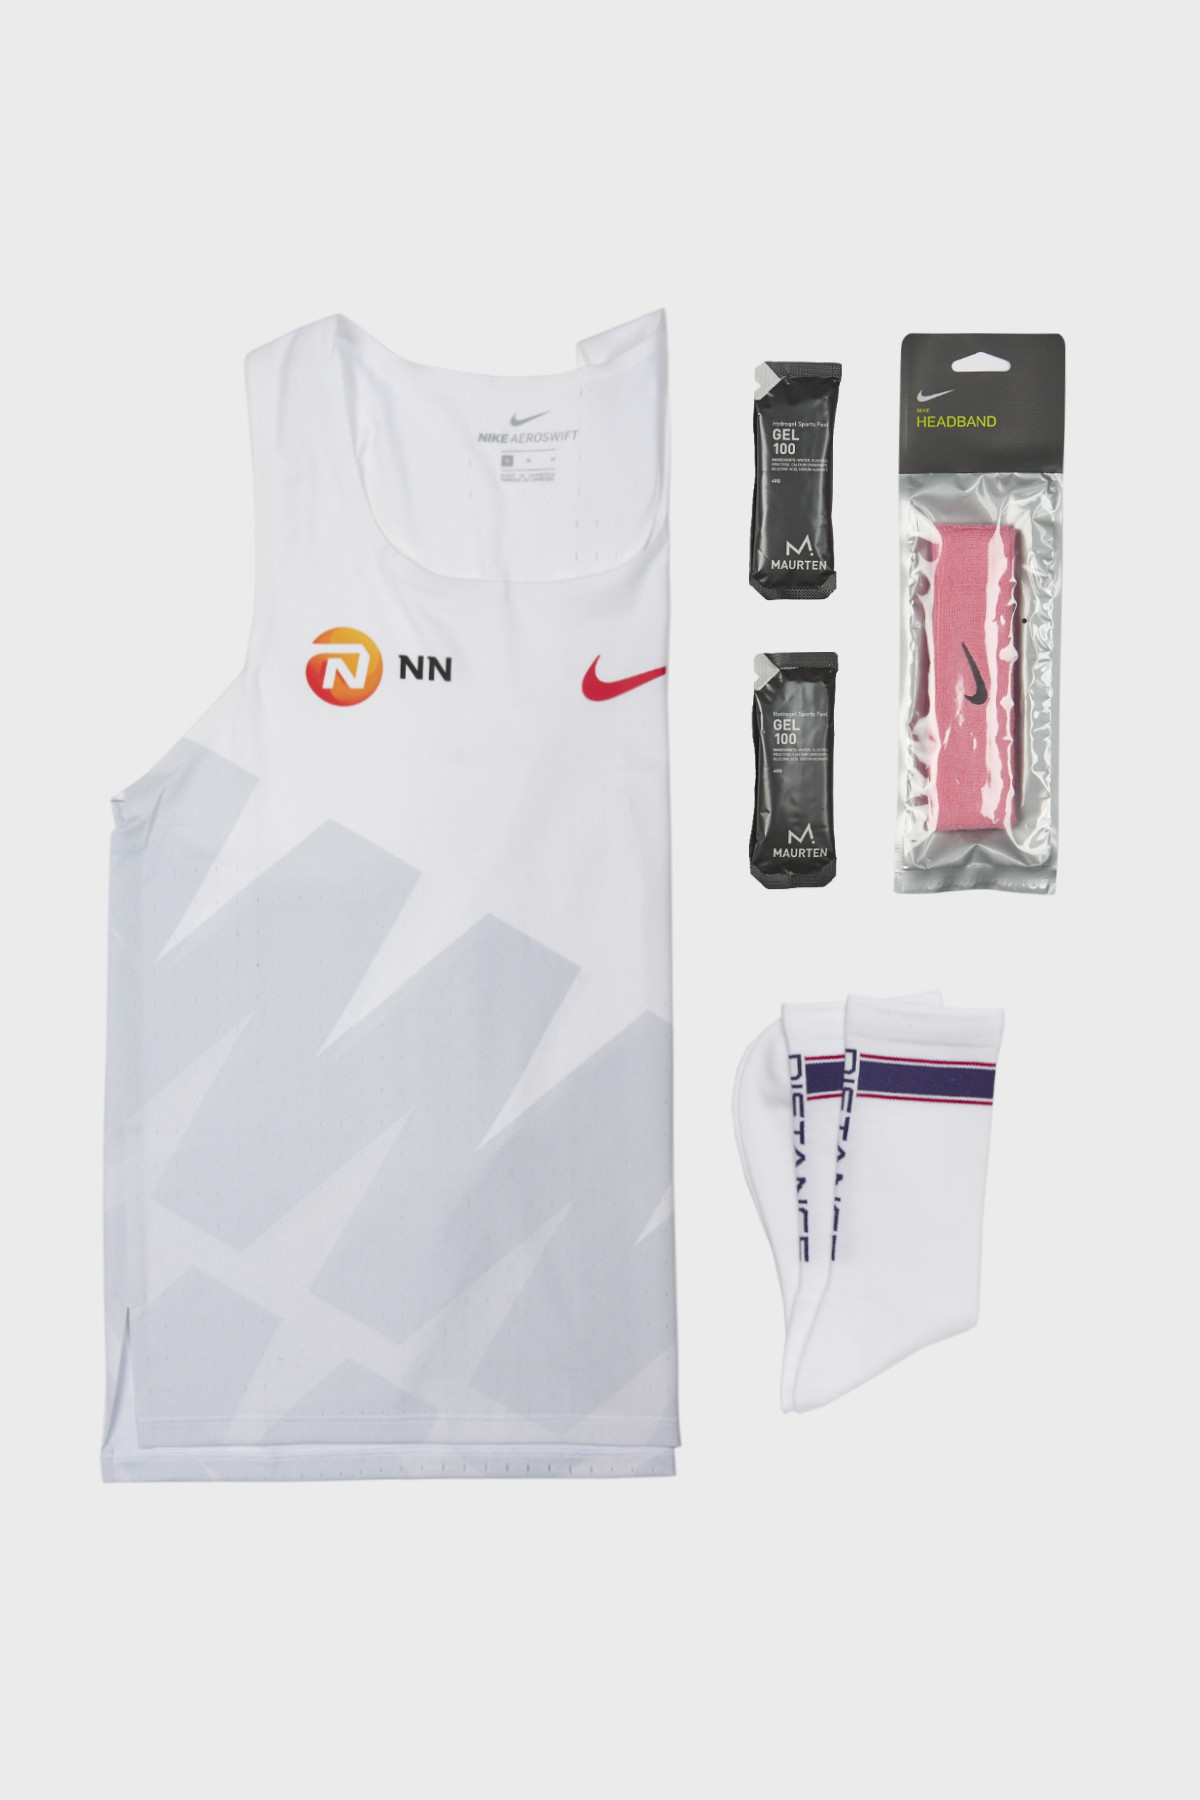 DISTANCE - SPEED PACK - PINK